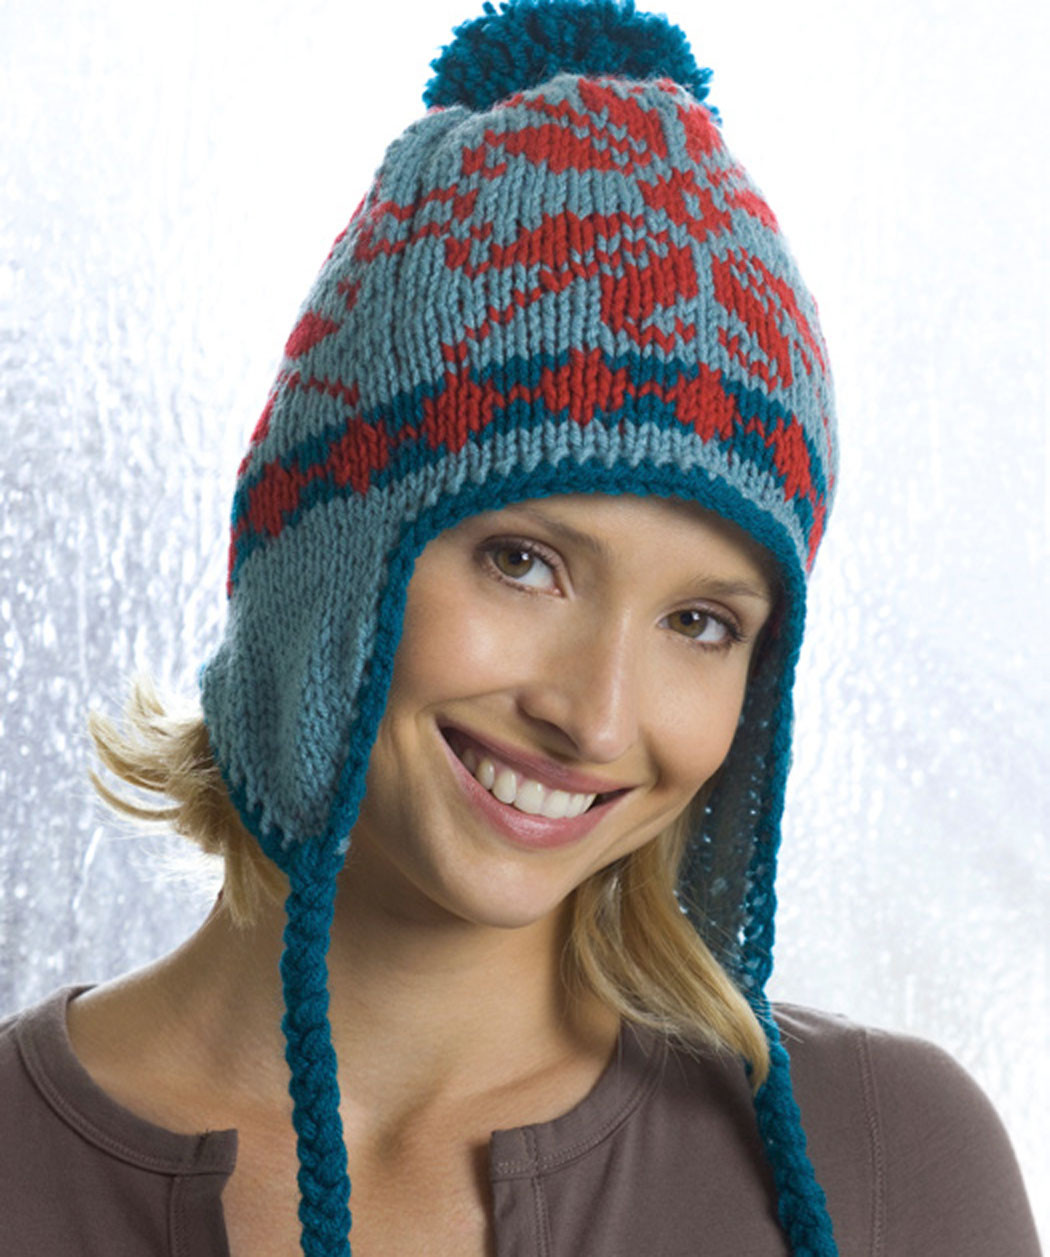 Hat with Ear Flaps Beautiful Earflap Hat Knitting Pattern Of Top 42 Photos Hat with Ear Flaps